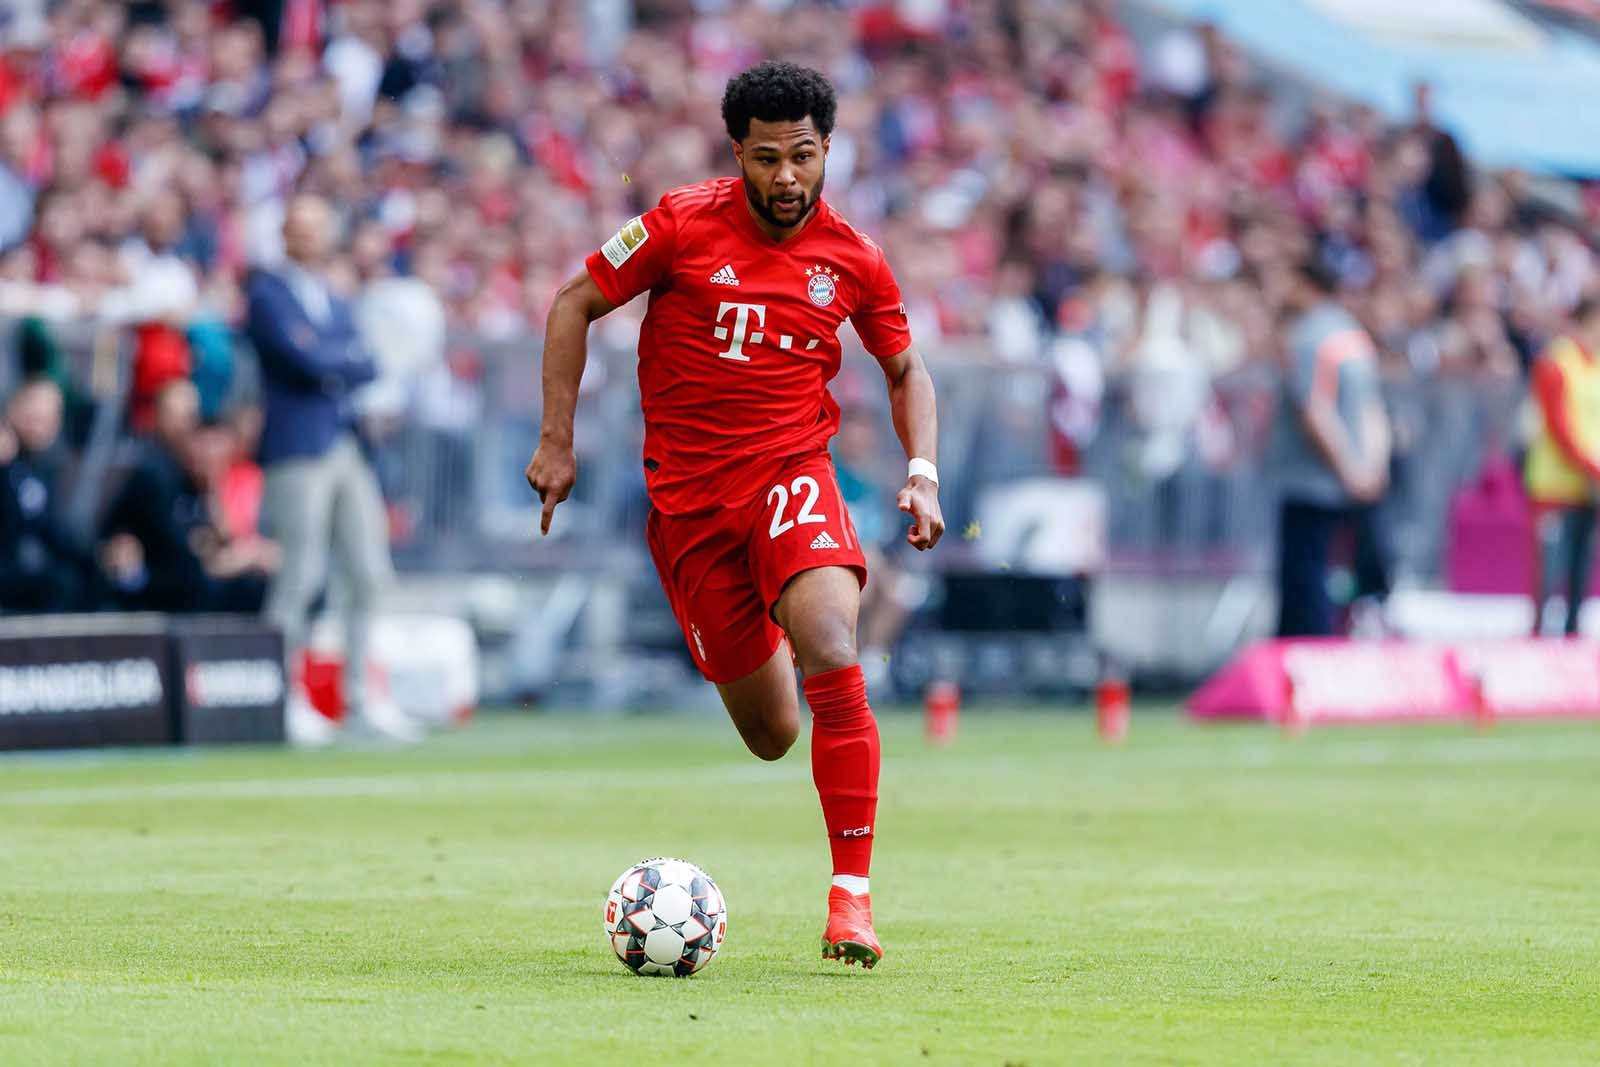 Watch PSG vs Bayern Munich Live stream Reddit Champions League Final 2020 soccer streams free online from anywhere